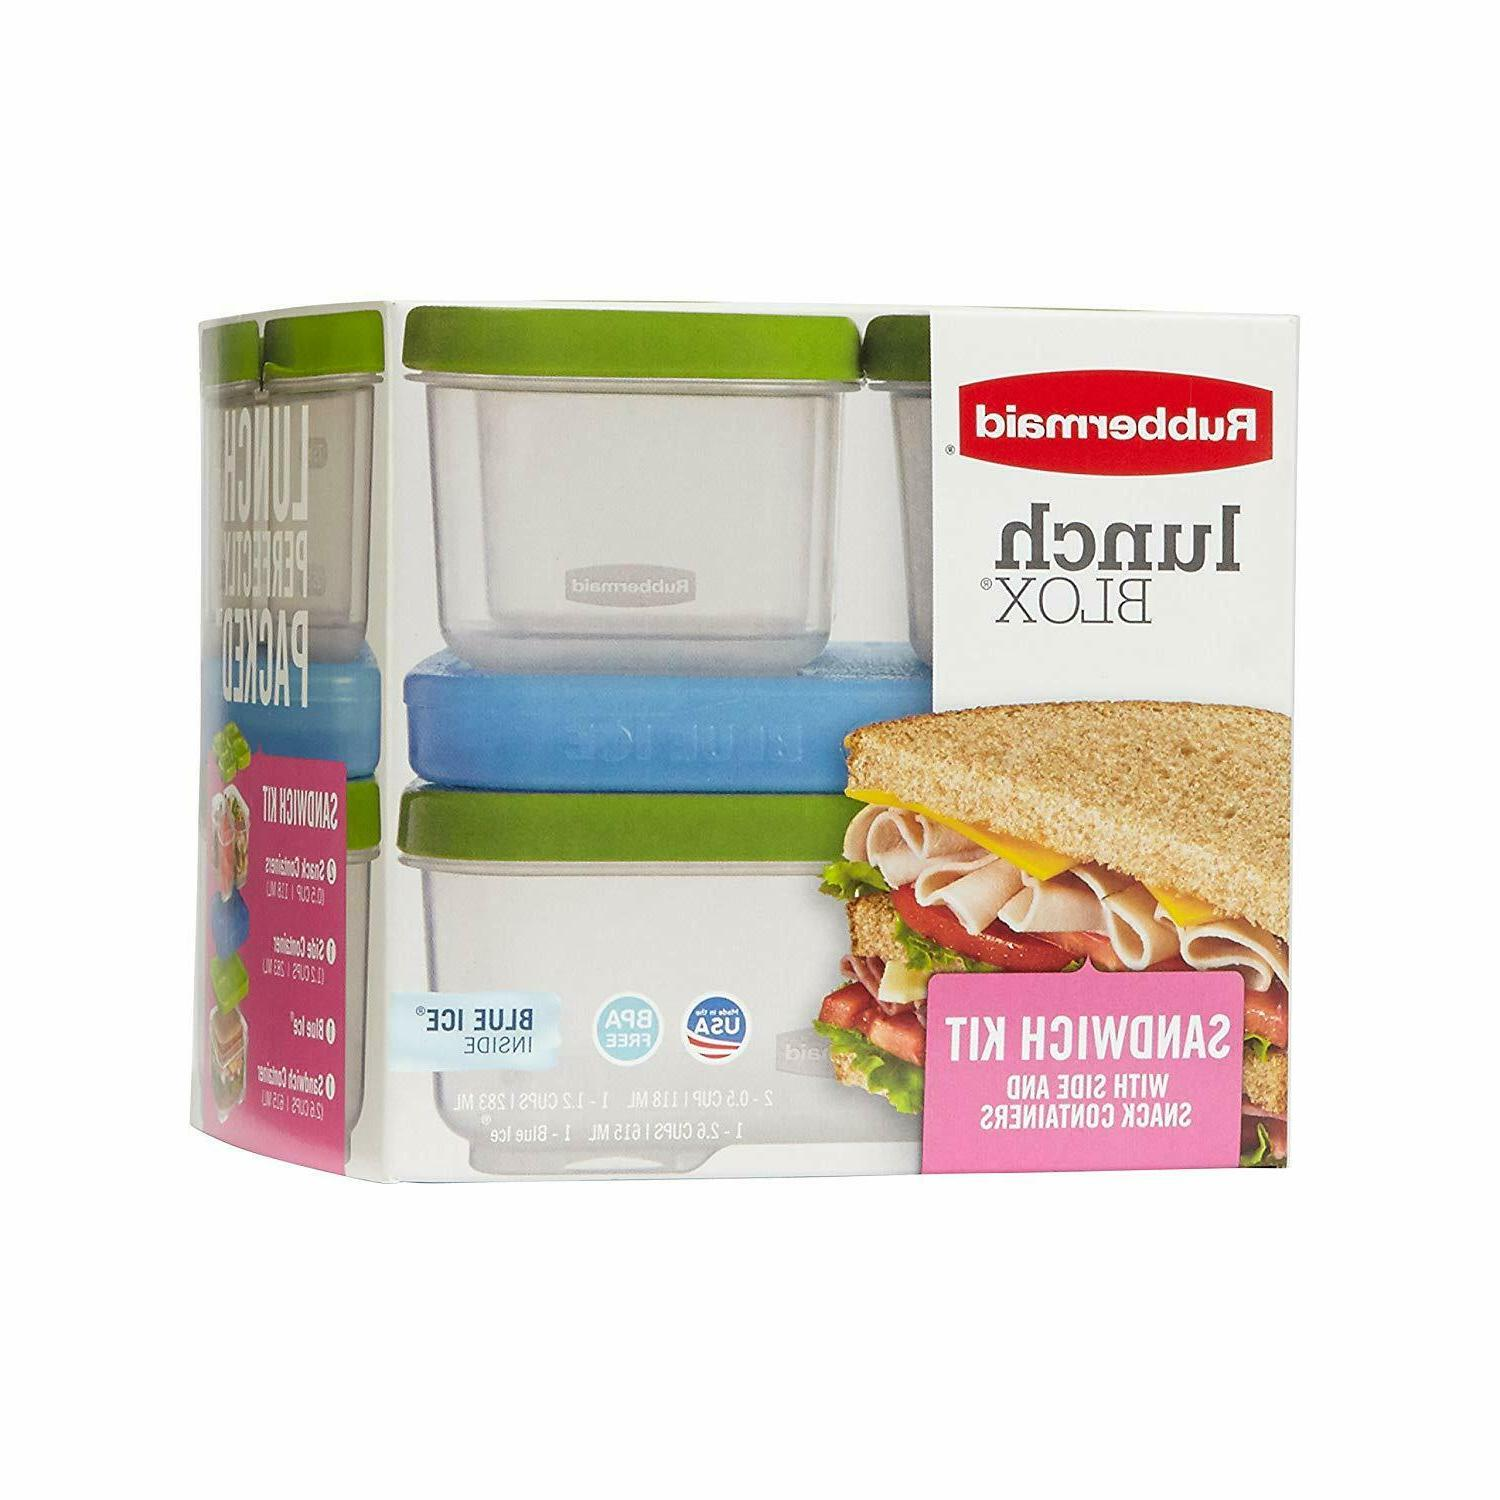 Rubbermaid Sandwich Containers Free